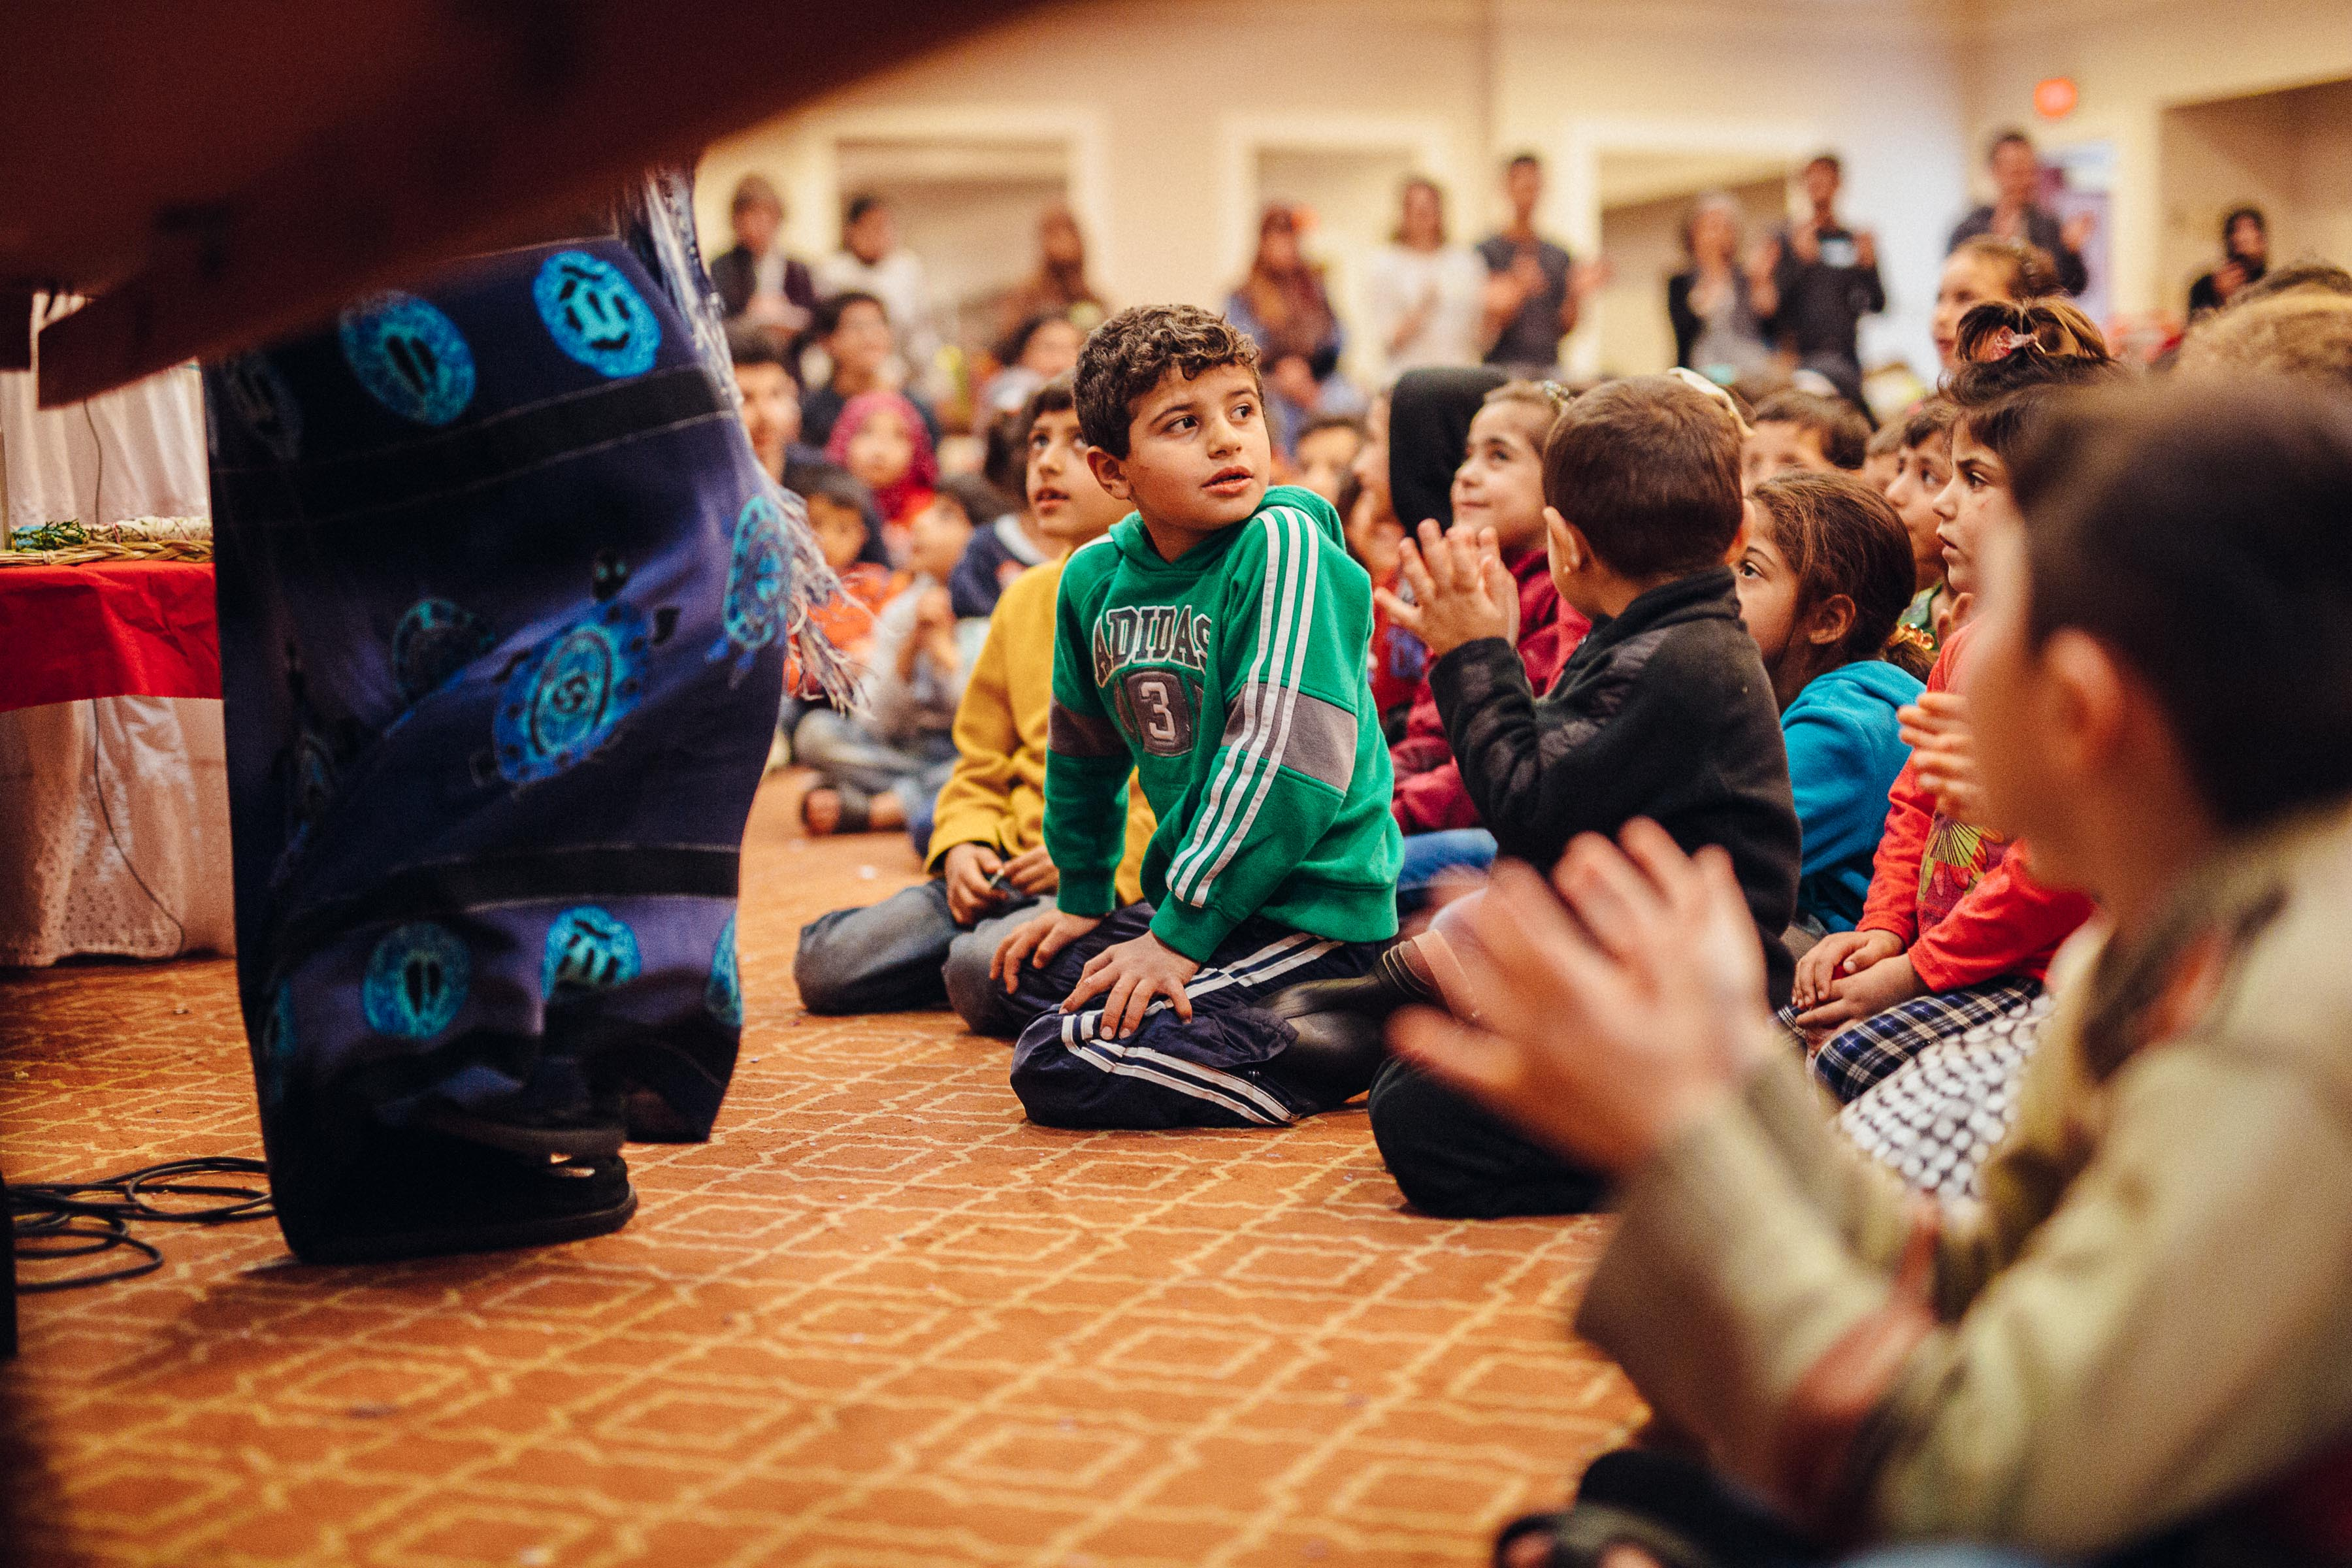 ChildrenPlazaHotel_SyrianStory_Final-65